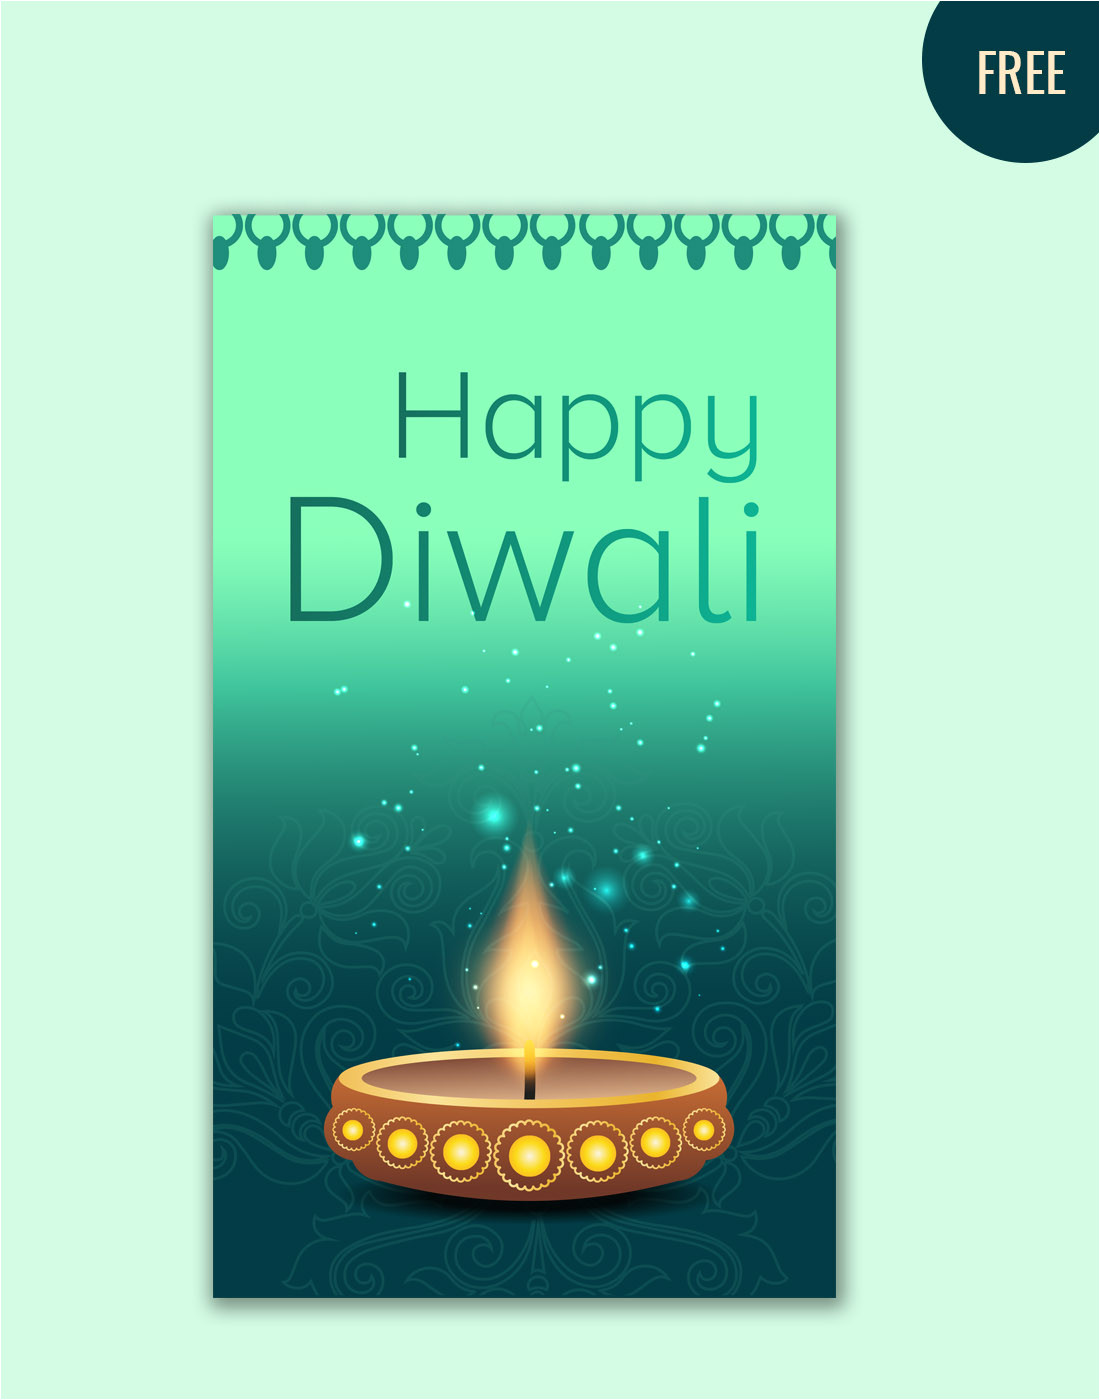 diwali greetings card